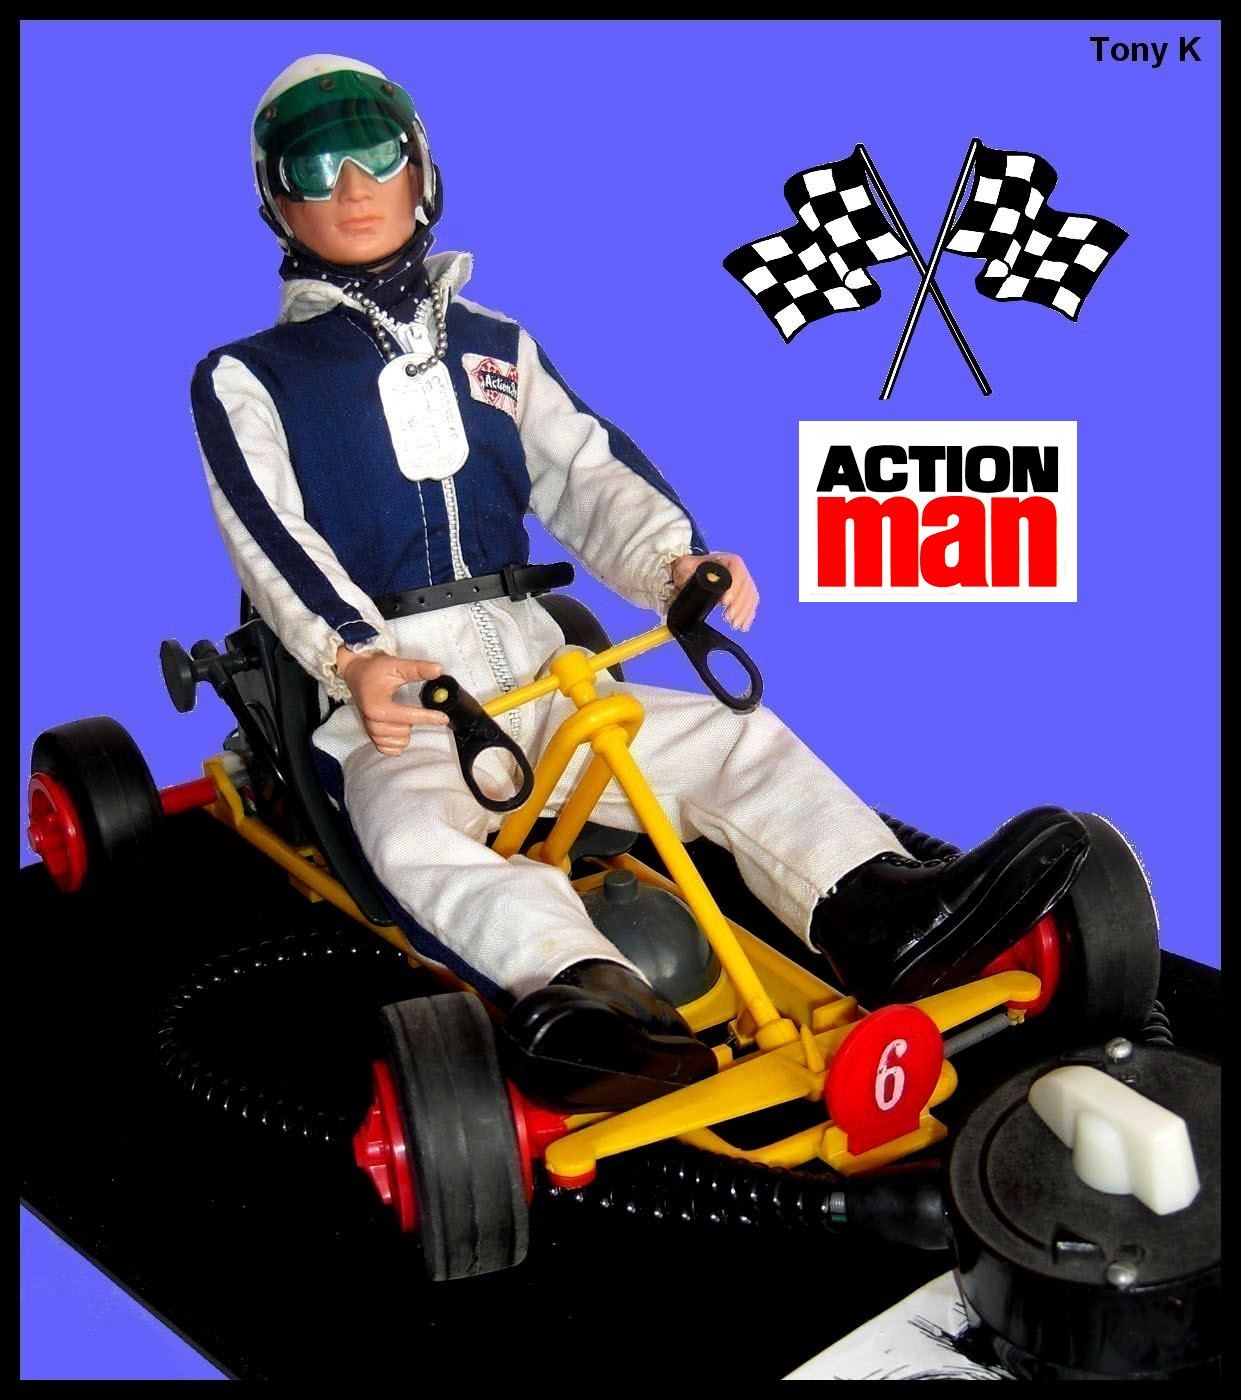 An Example Of The Action Man Go Kart Can Be Seen Below, Featuring A GI Joe  Racing Car Driver With His Own Unique Outfit.